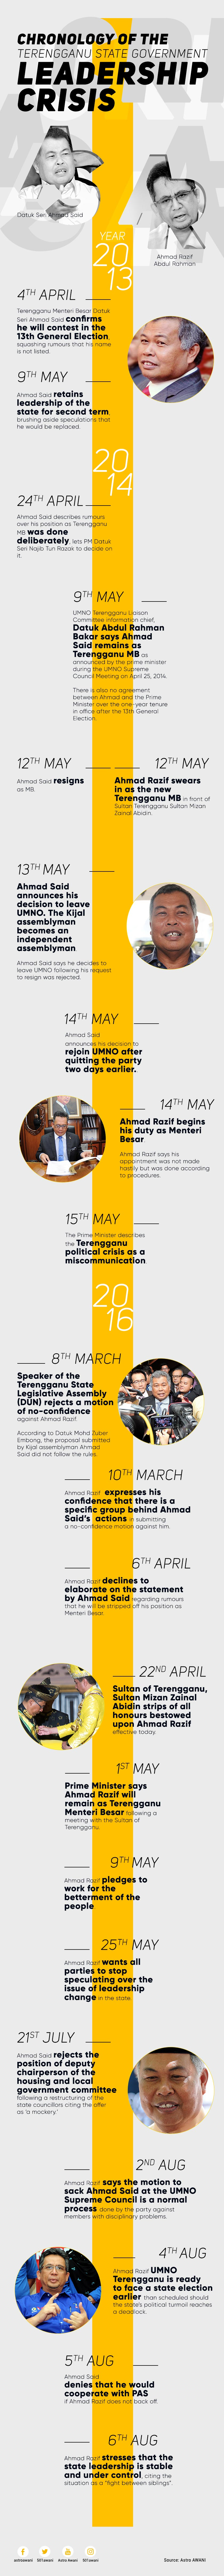 Here's a chronology of the political crisis in Terengganu